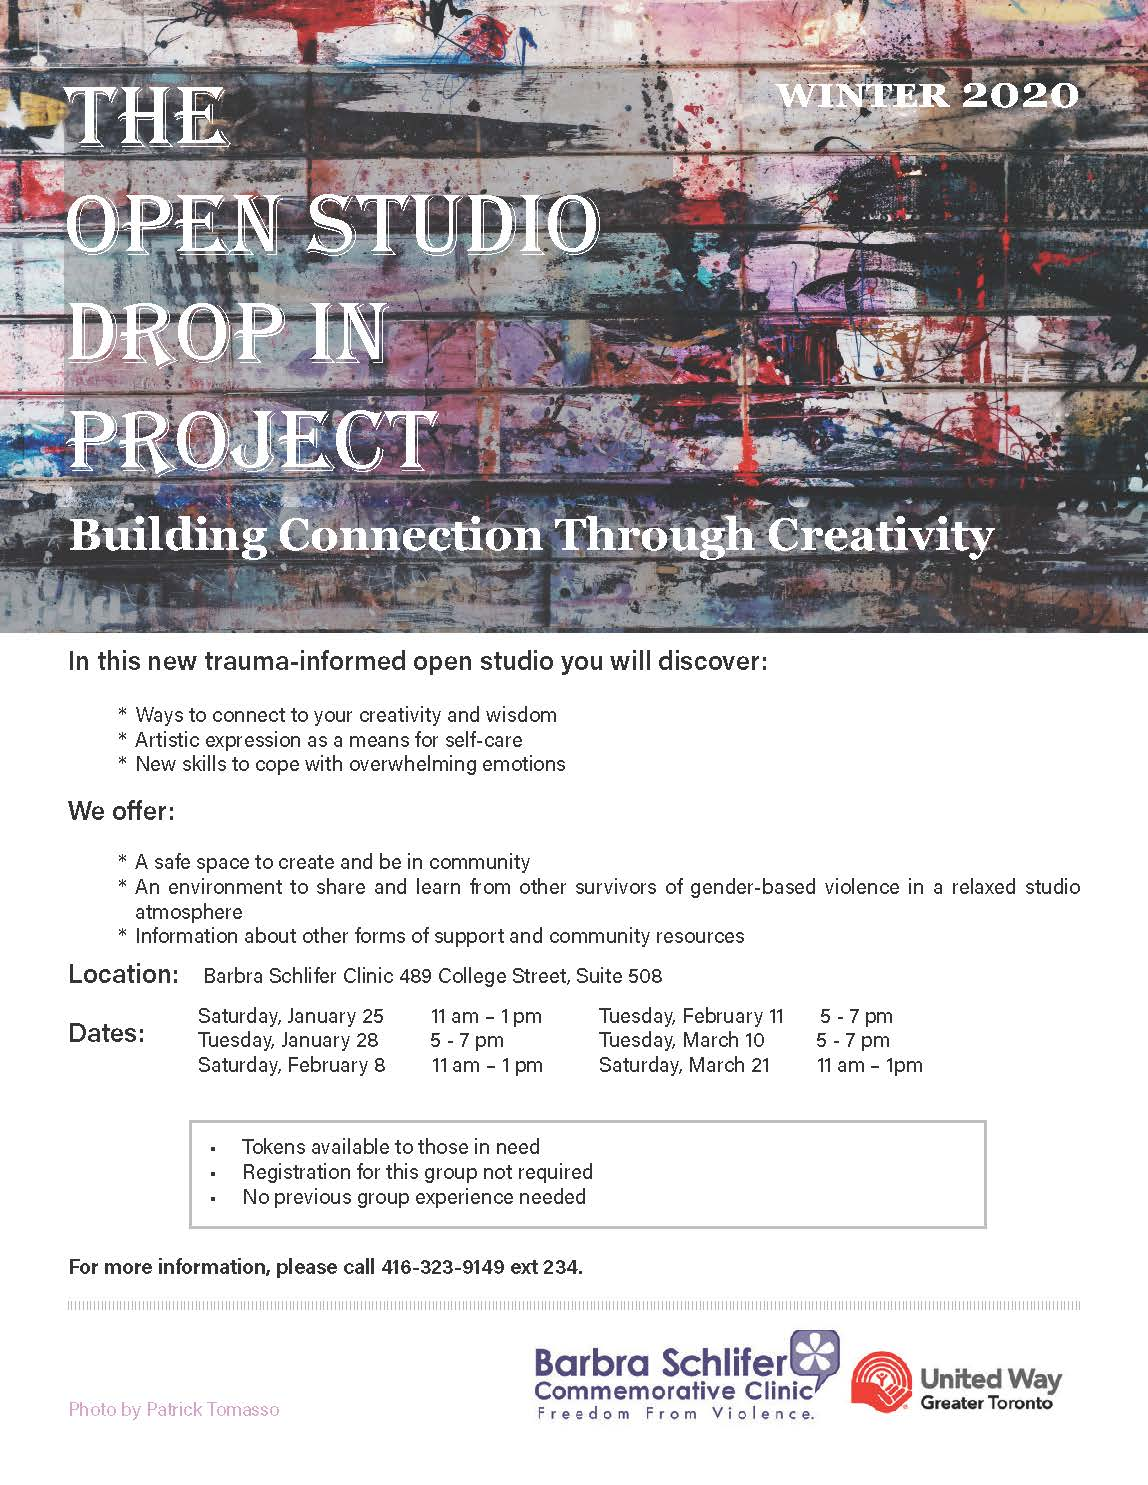 photo of the Open Studio Drop In Project flyer